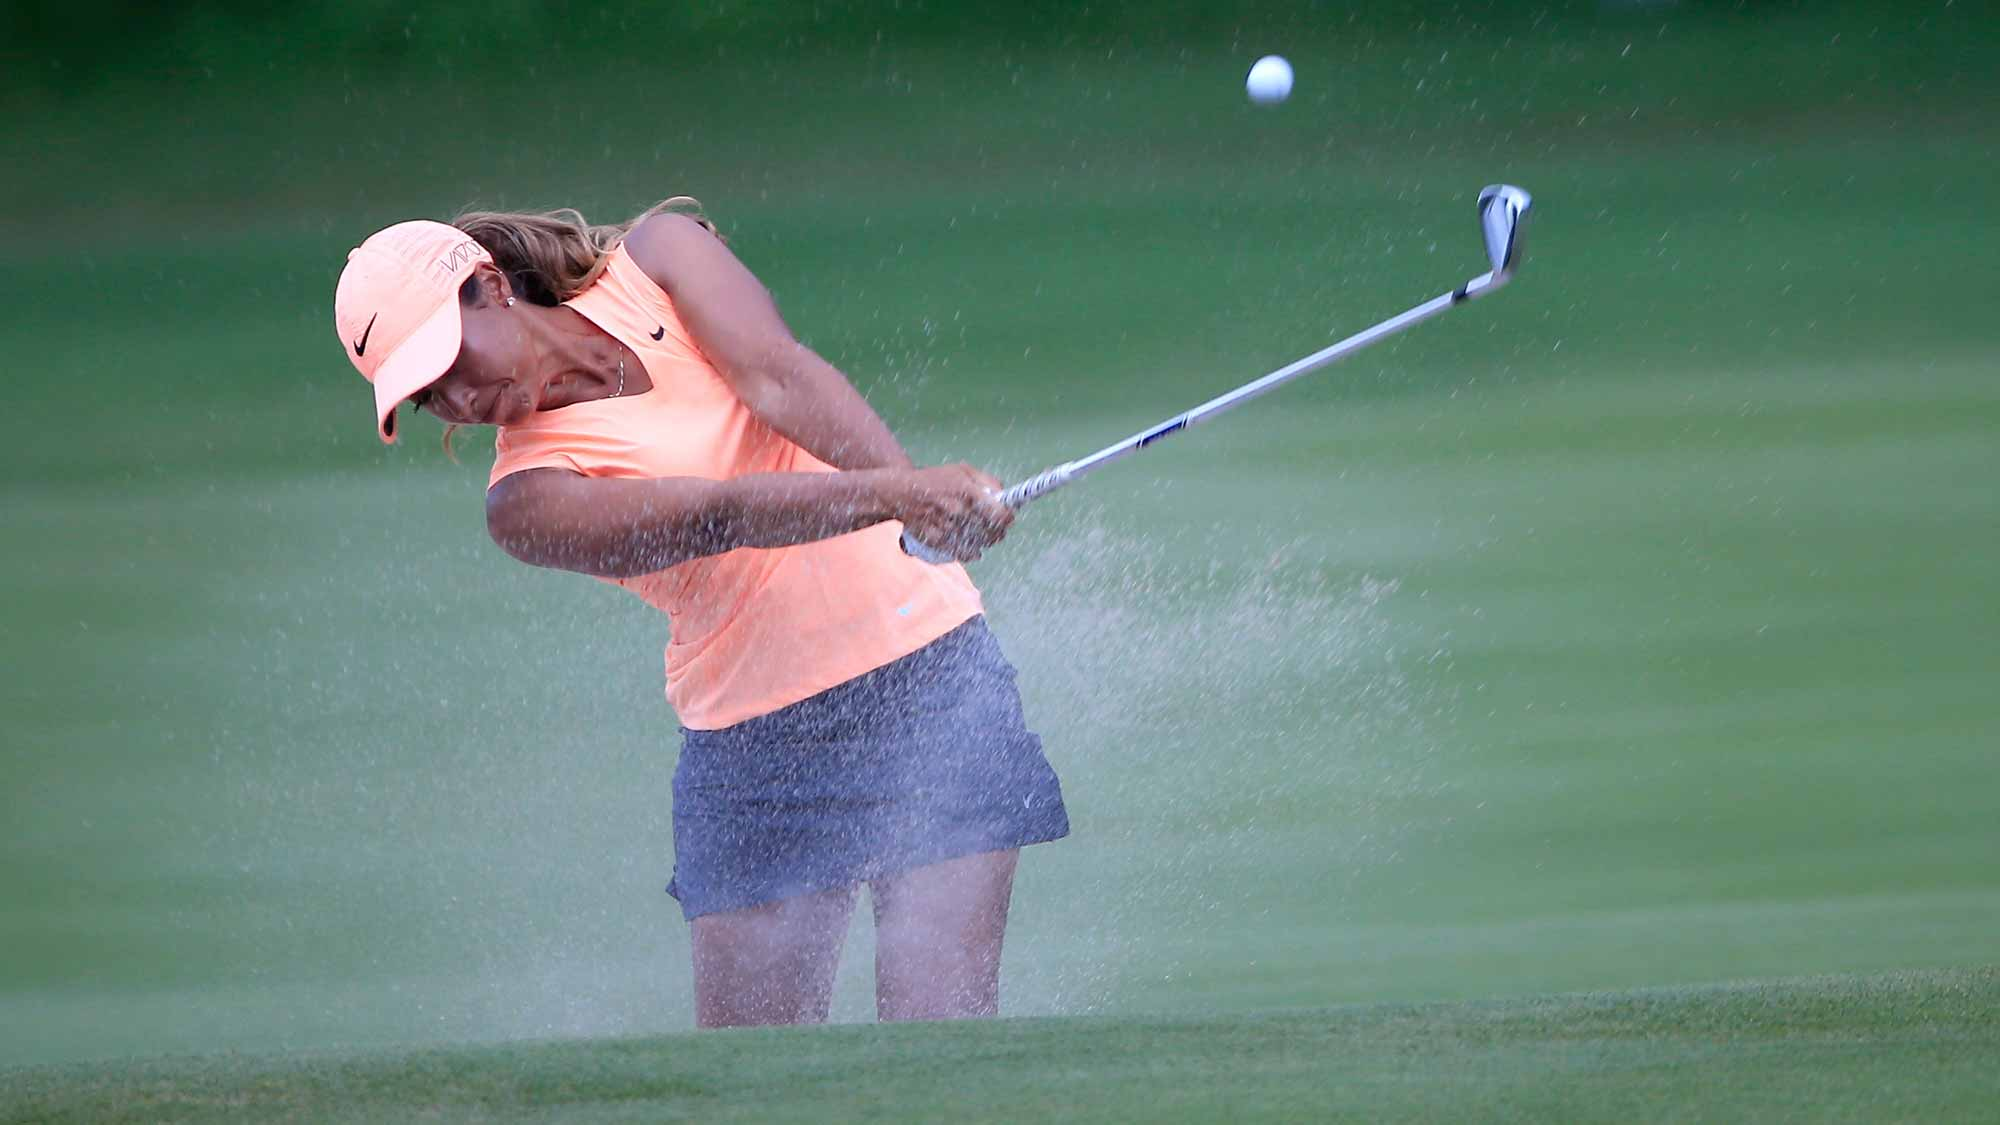 Cheyenne Woods of the United States plays a shot on the seventh hole during the first round of the Walmart NW Arkansas Championship Presented by P&G at Pinnacle Country Club